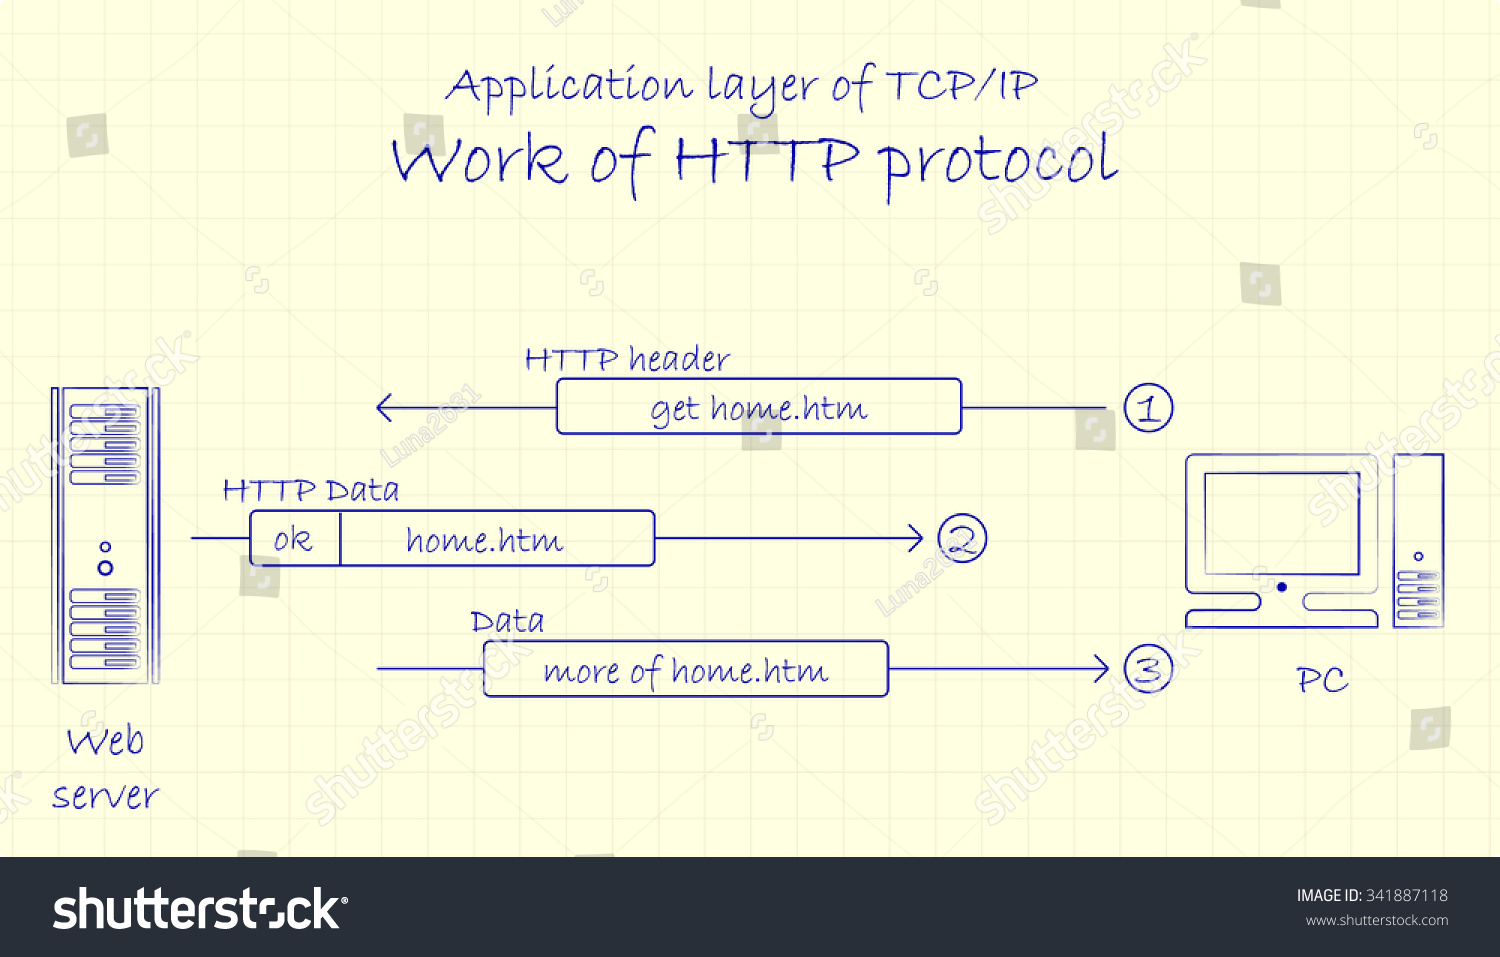 hight resolution of application layer of tcp ip networking model work of http protocol